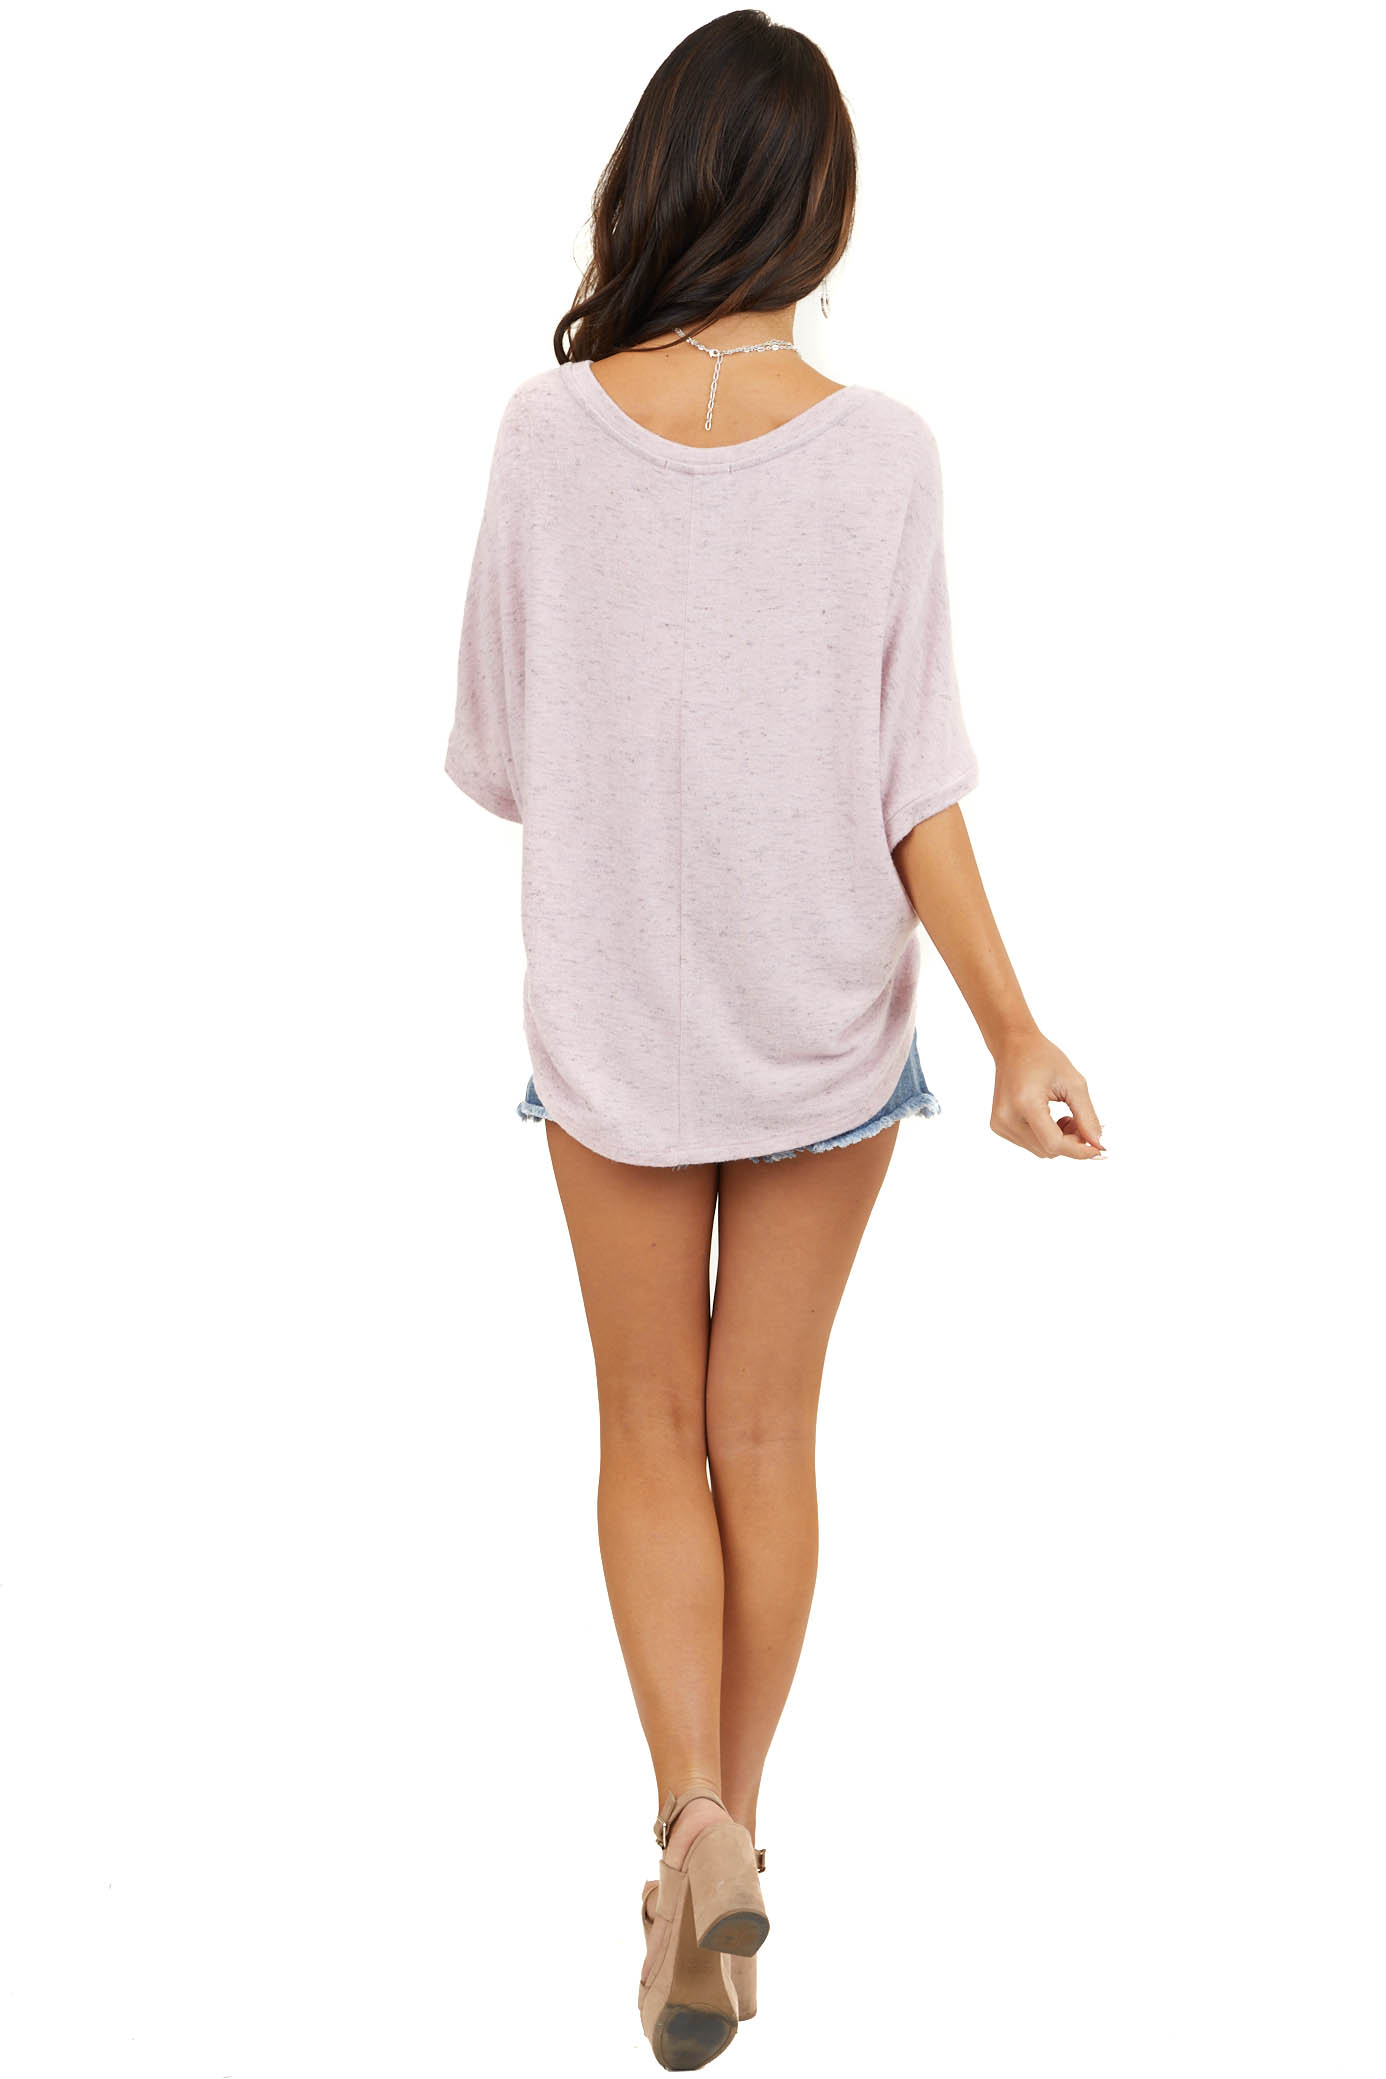 Pale Pink Two Tone Super Soft Top with Dolman Sleeves